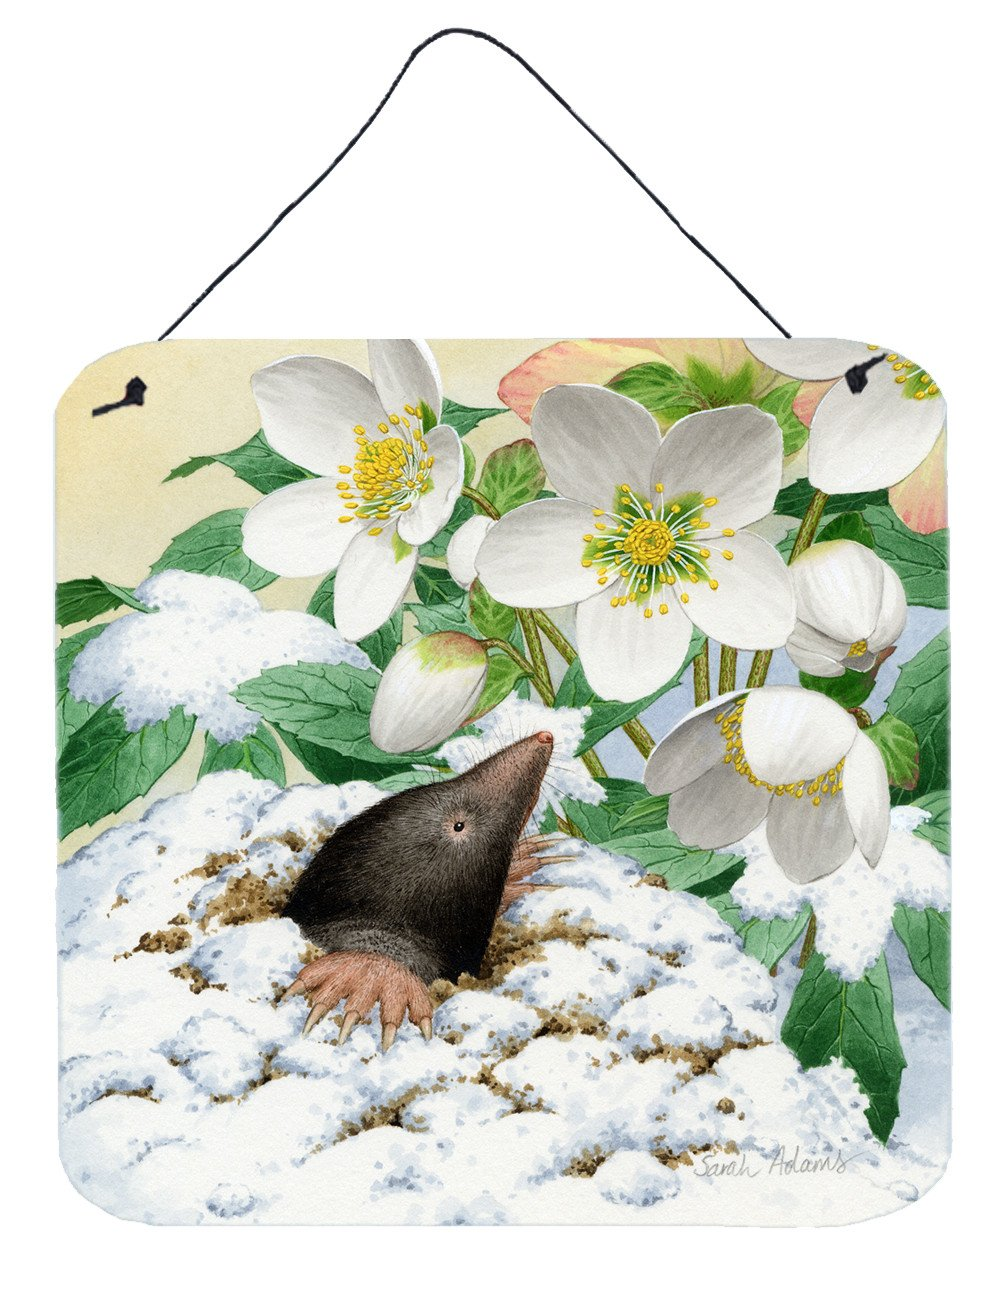 Buy this Mole by Sarah Adams Wall or Door Hanging Prints ASAD0387DS66